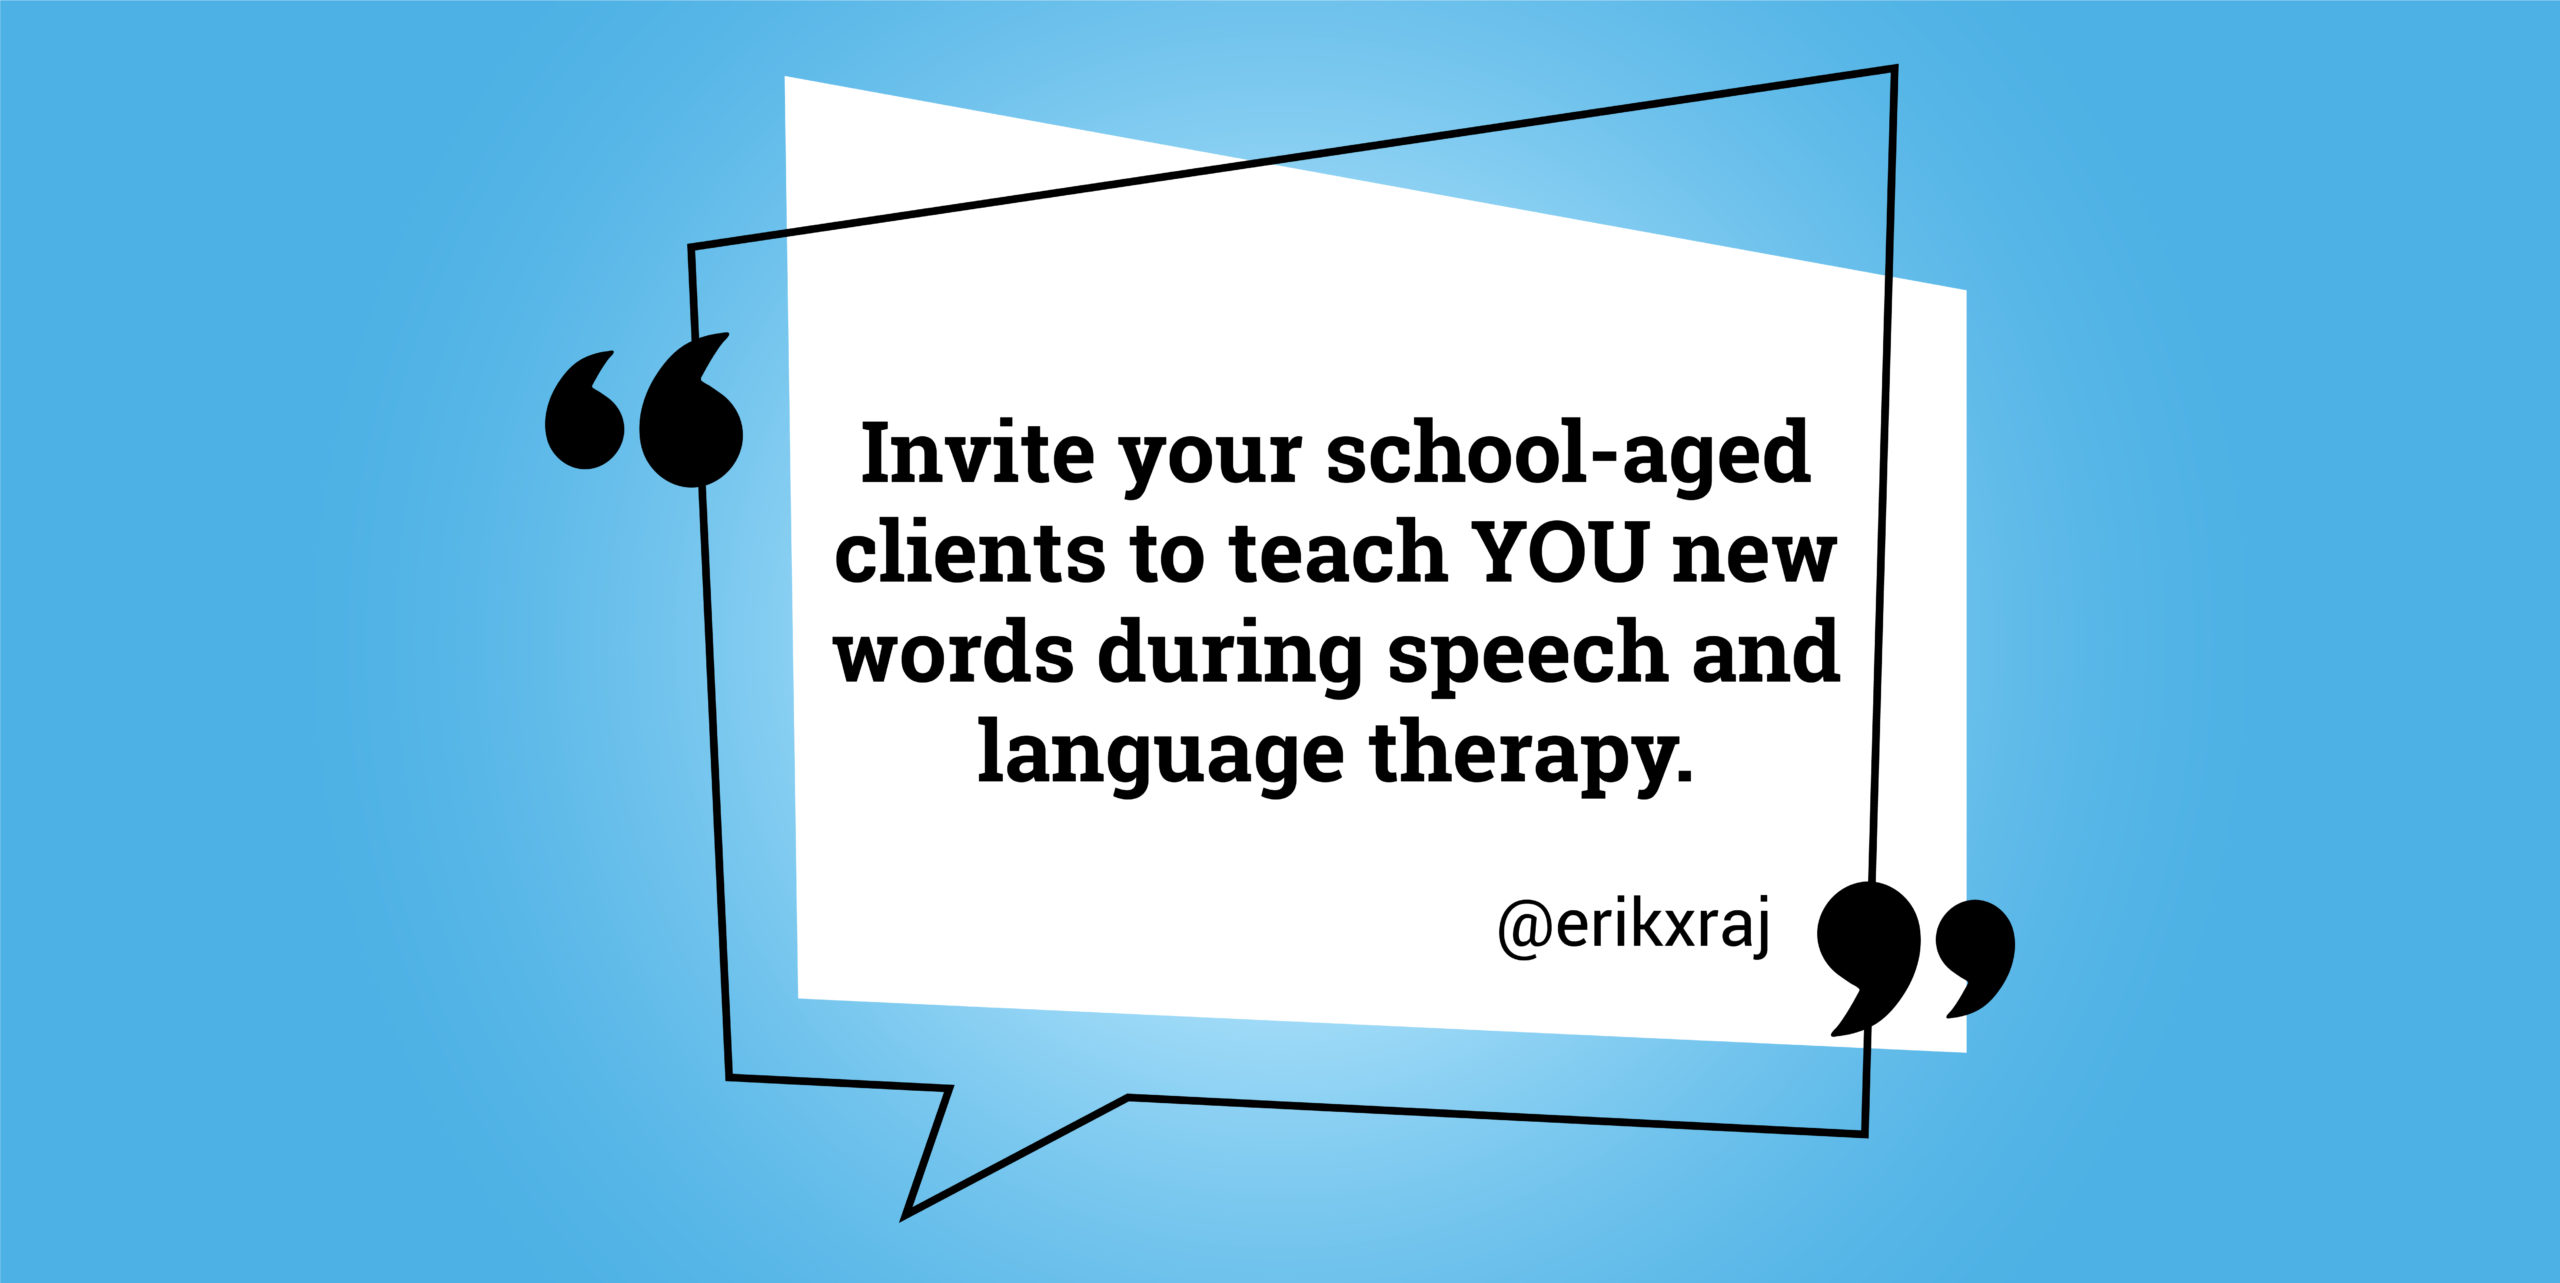 Inviting Your School-Aged Clients to Teach You New Words